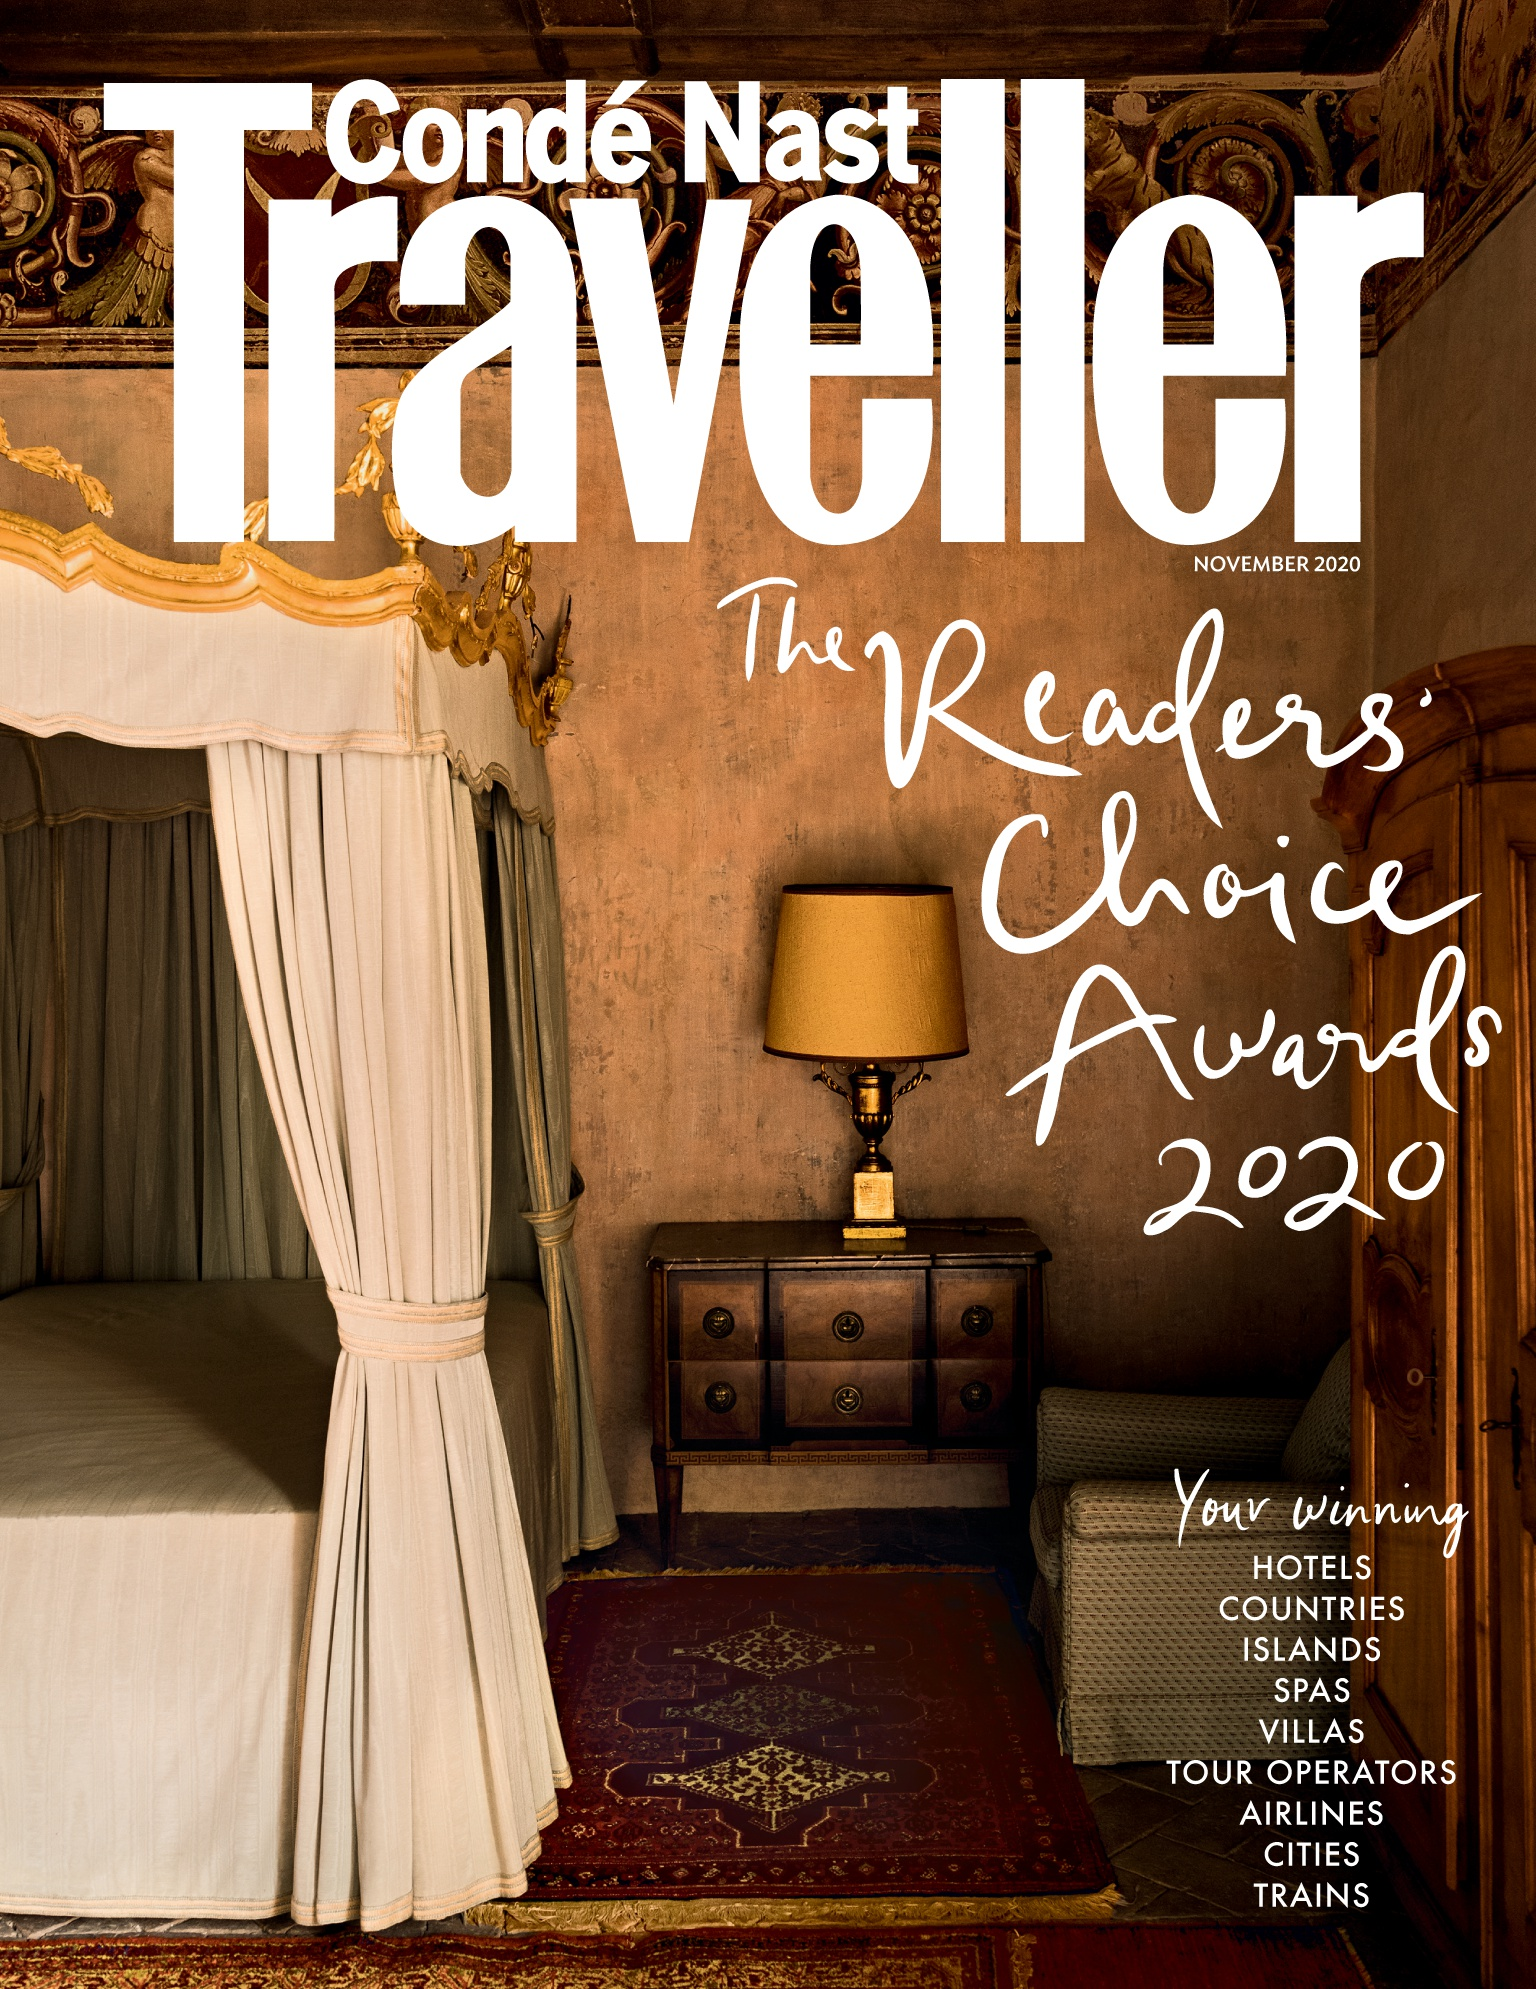 Condé Nast Traveller – October 2020